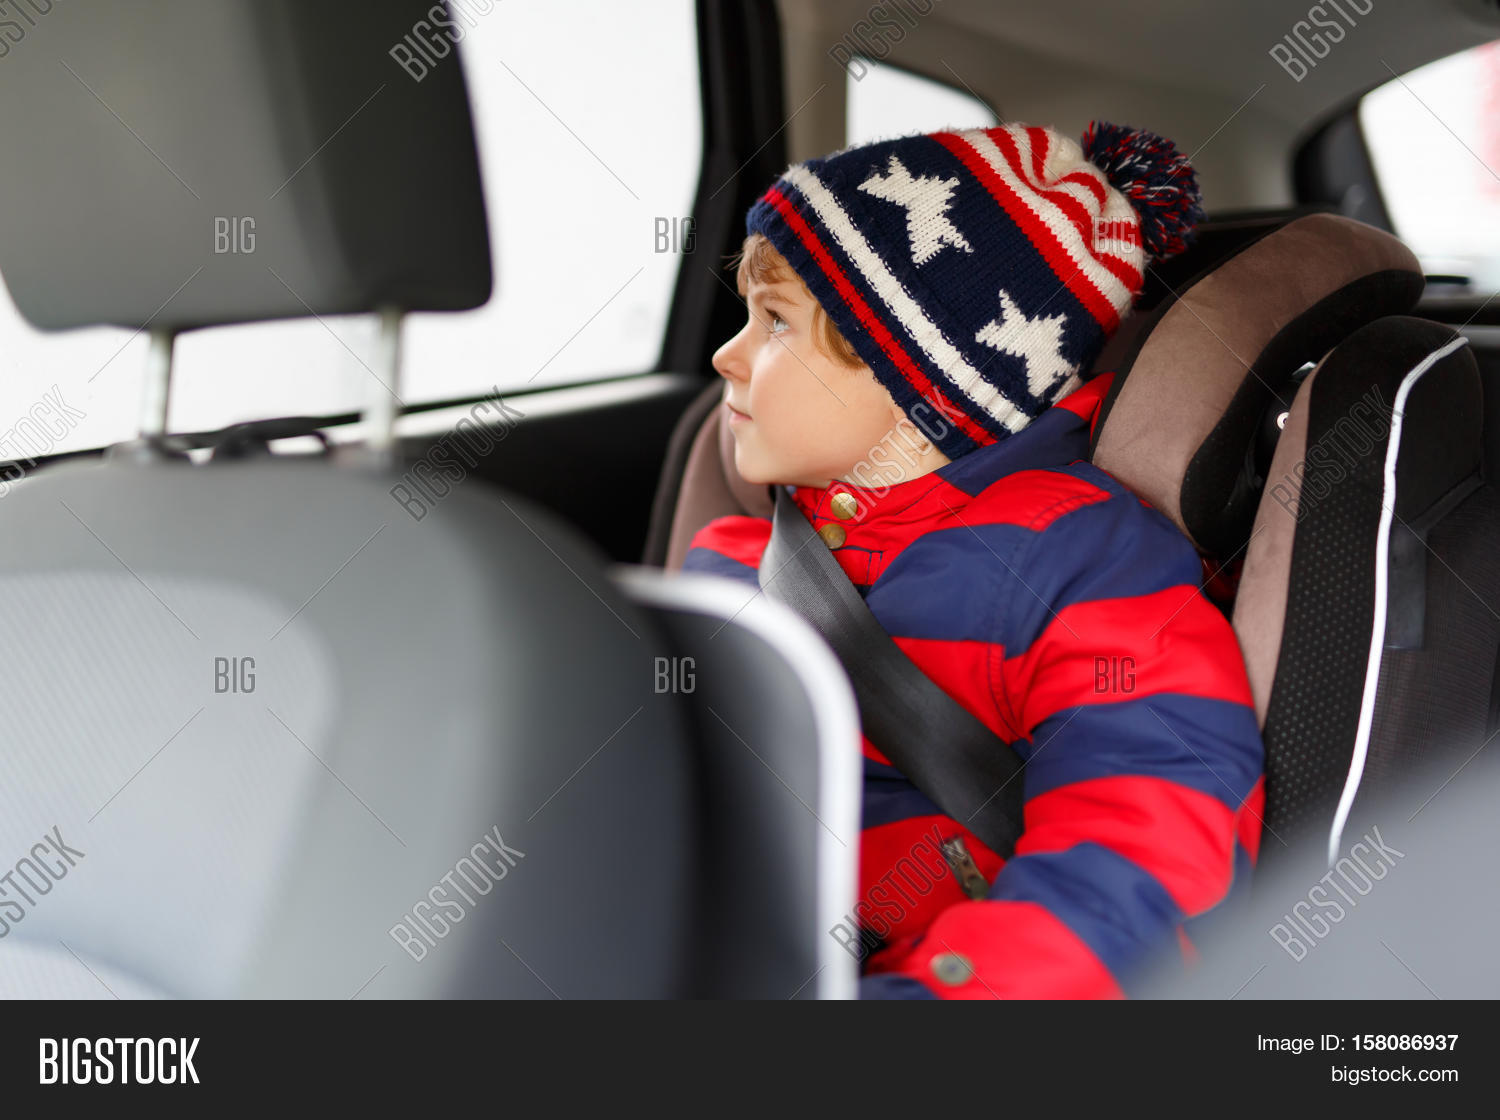 adorable cute preschool kid boy sitting in car in winter clothes little child in safety